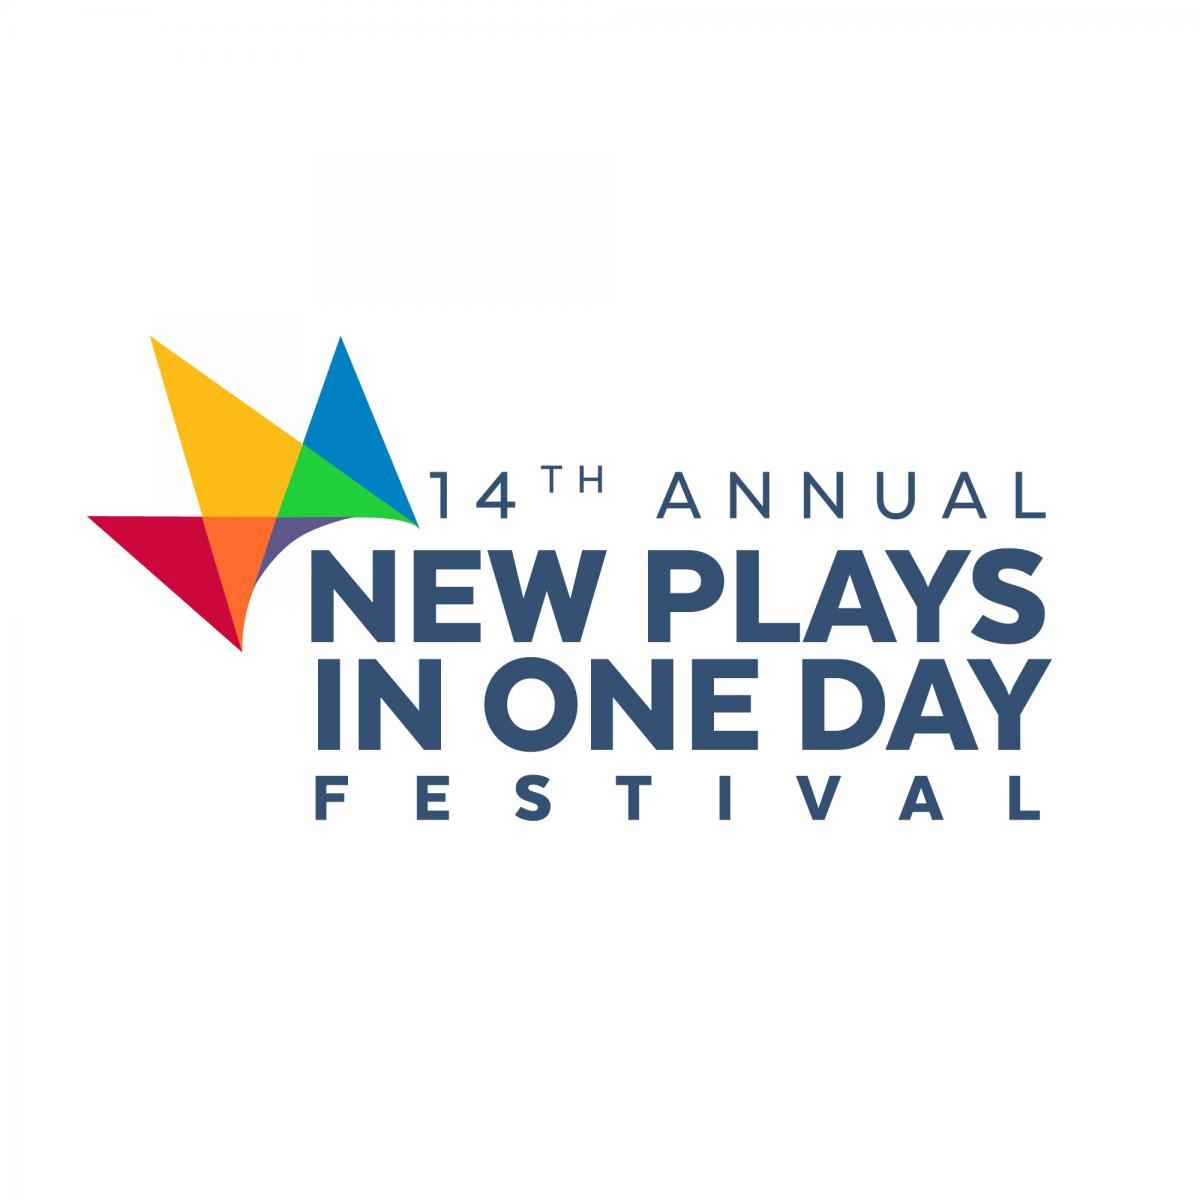 Play's in One Day Festival logo for the Marietta College's 2019 Theatre Season